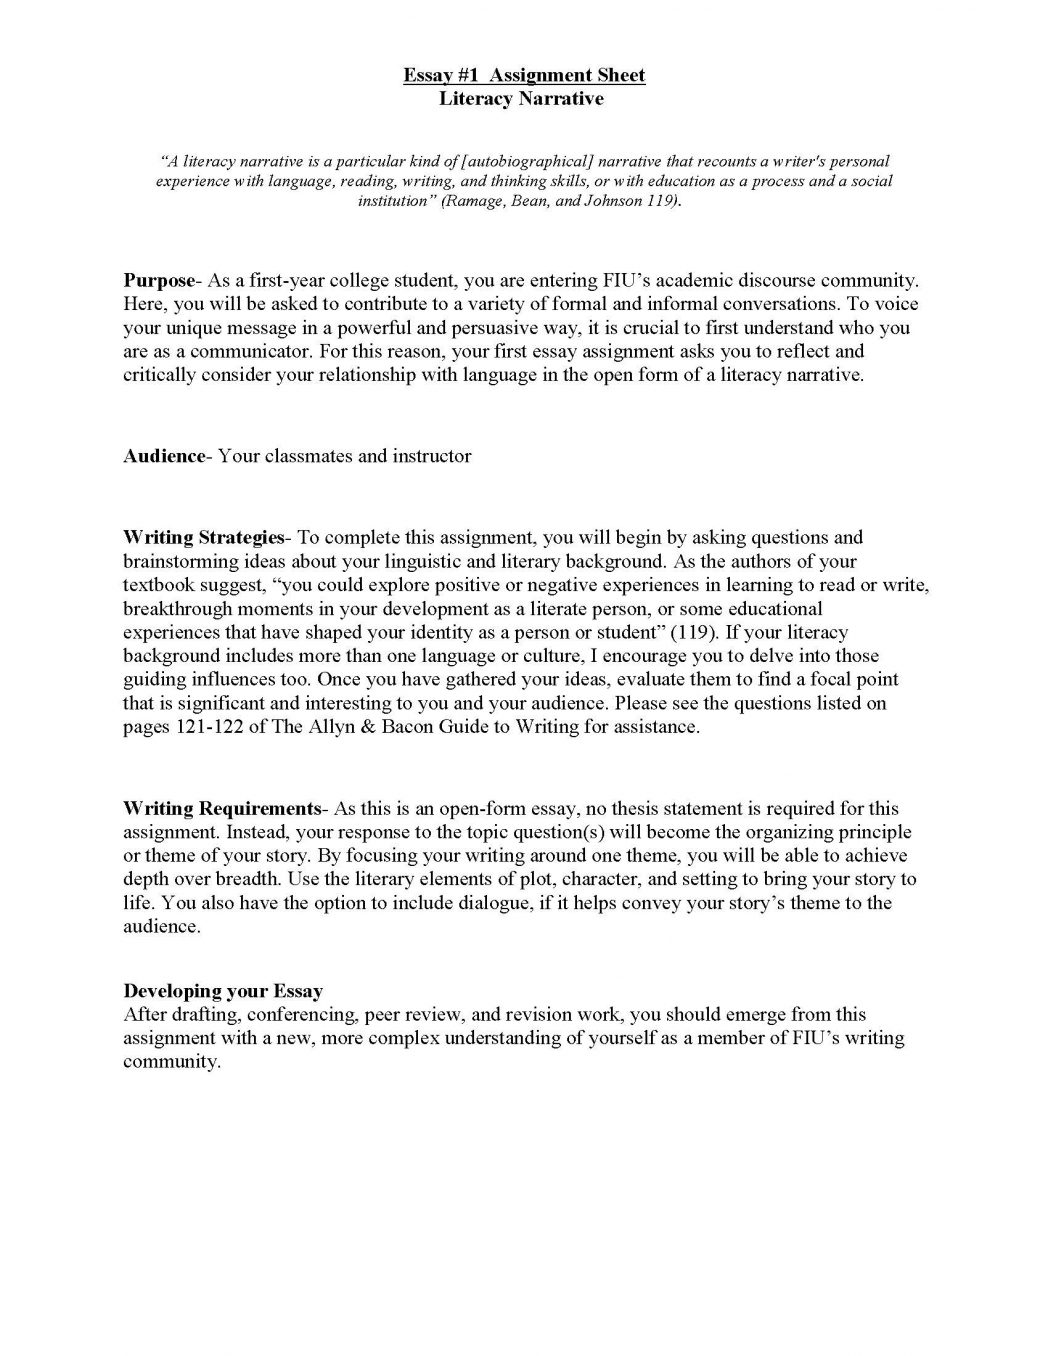 005 Thesis Statement For Narrativey Example Examples Of Outline Good Descriptive Topics Literacy Unit Assignment Spring 2012 P Personal 1048x1356 Astounding Narrative Essay Full